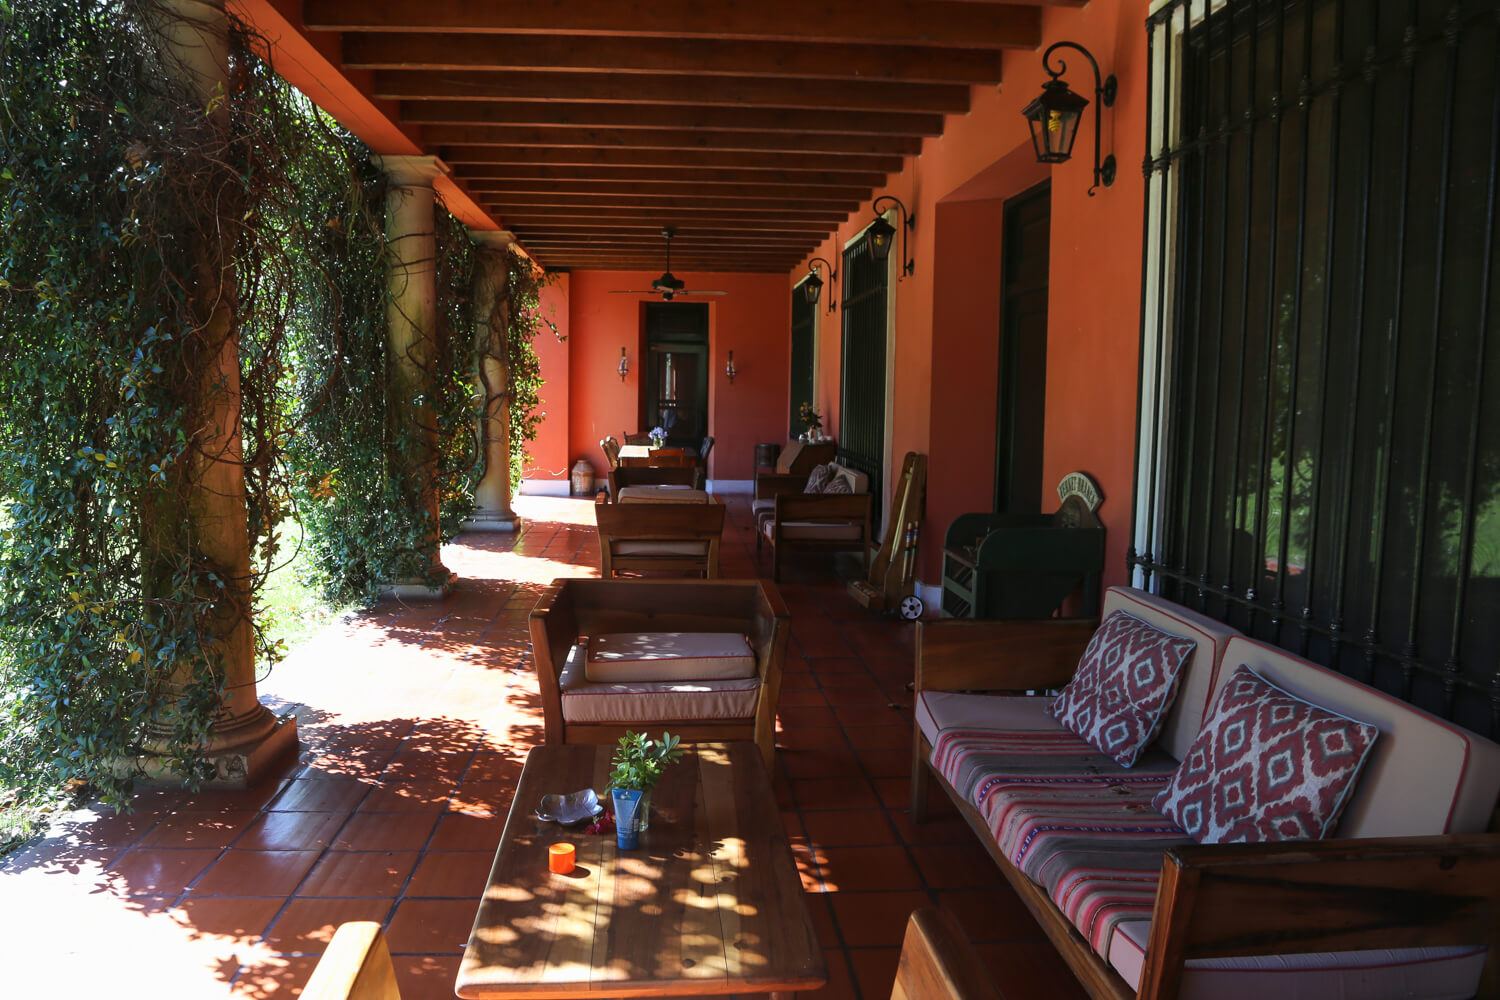 A patio filled with lounge seating and antique tables at Estancia la Bandada